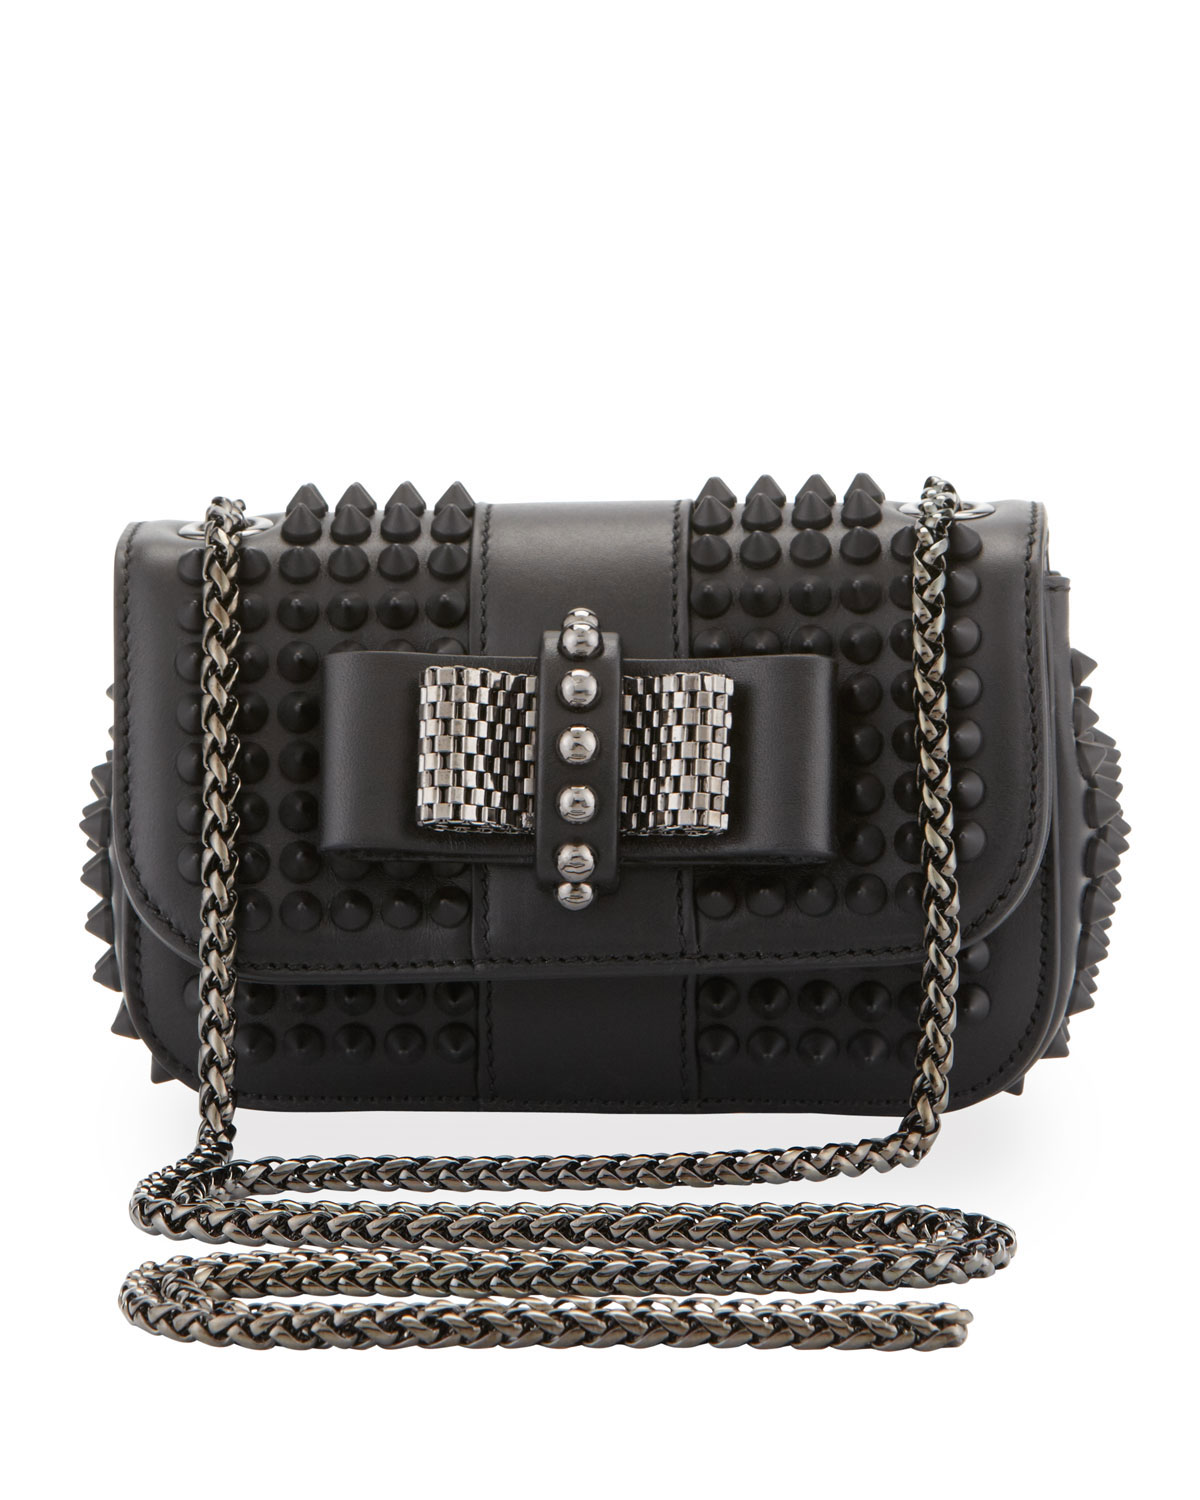 d7a9303eed1 Sweet Charity Small Spiked Crossbody Bag, Black